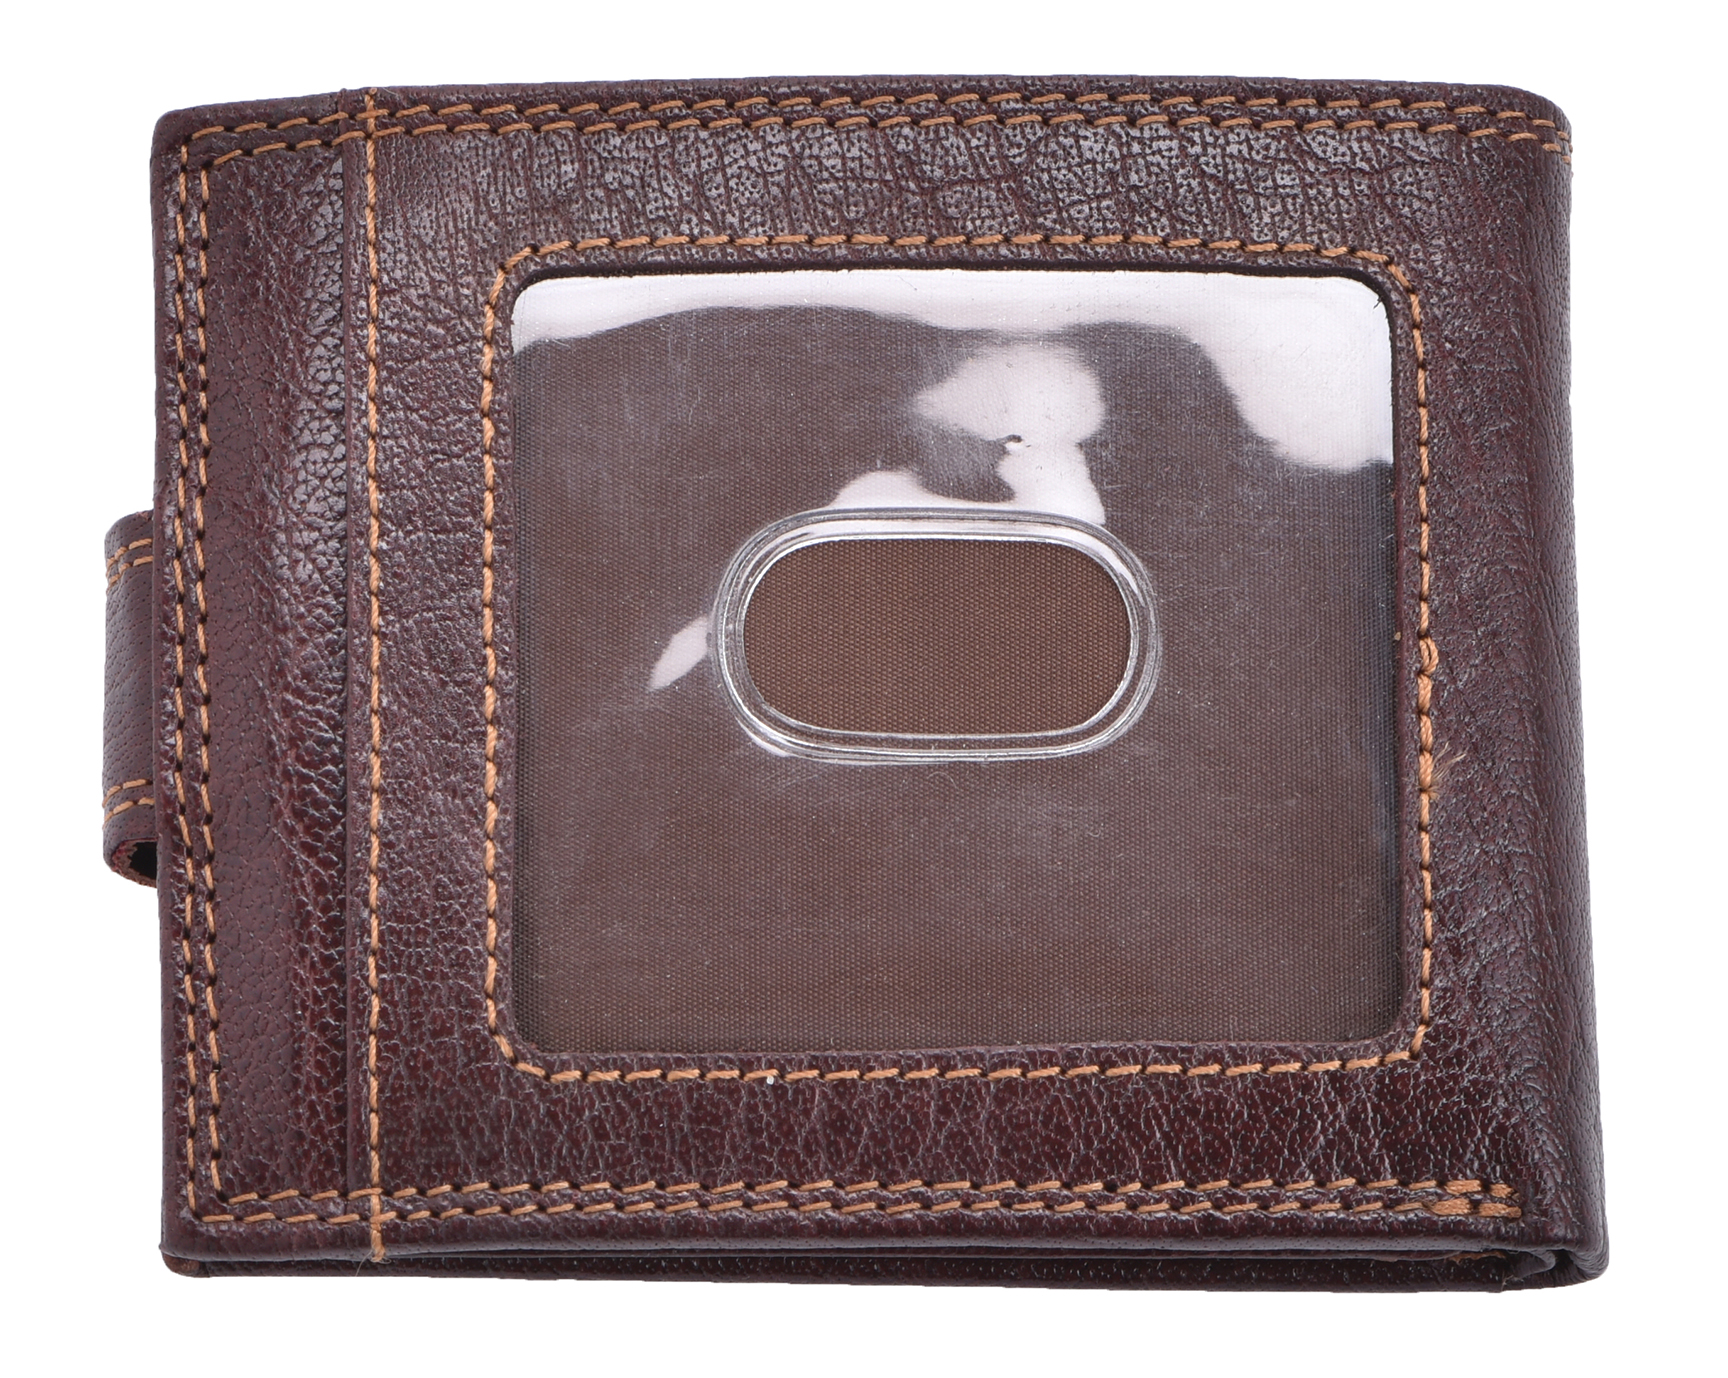 Luxe-Veritable-Grained-Cuir-Homme-Flip-Out-Wallet-Purse-Coin-Holder-Brown miniature 5